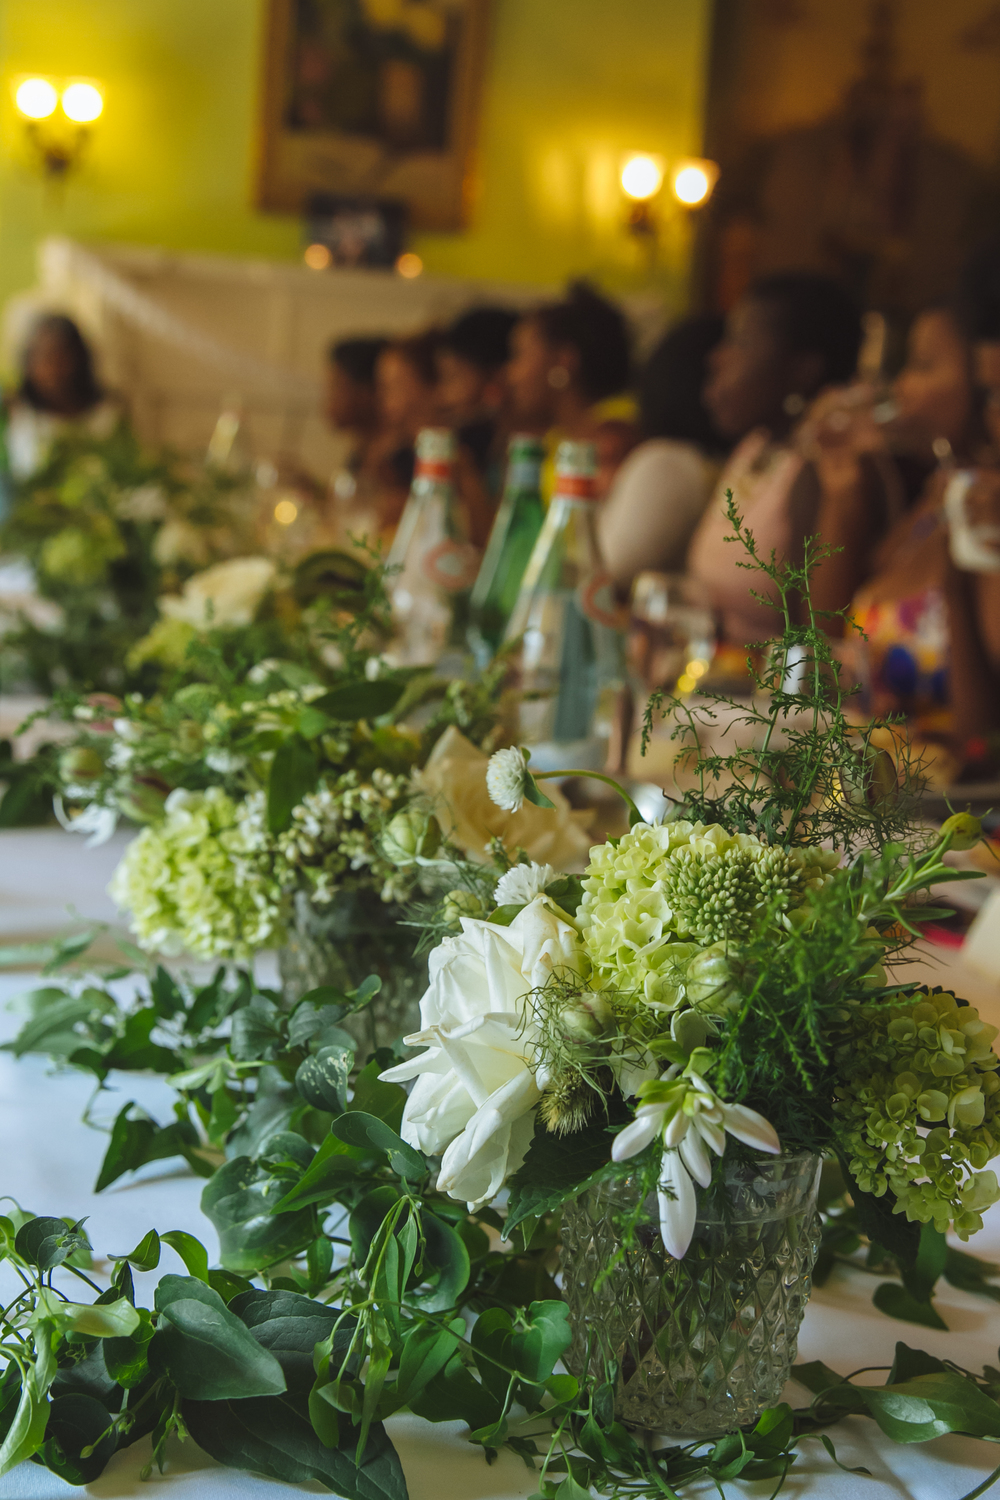 The client wanted a single long table for her tea party with lush white and green flowers to adorn the table.